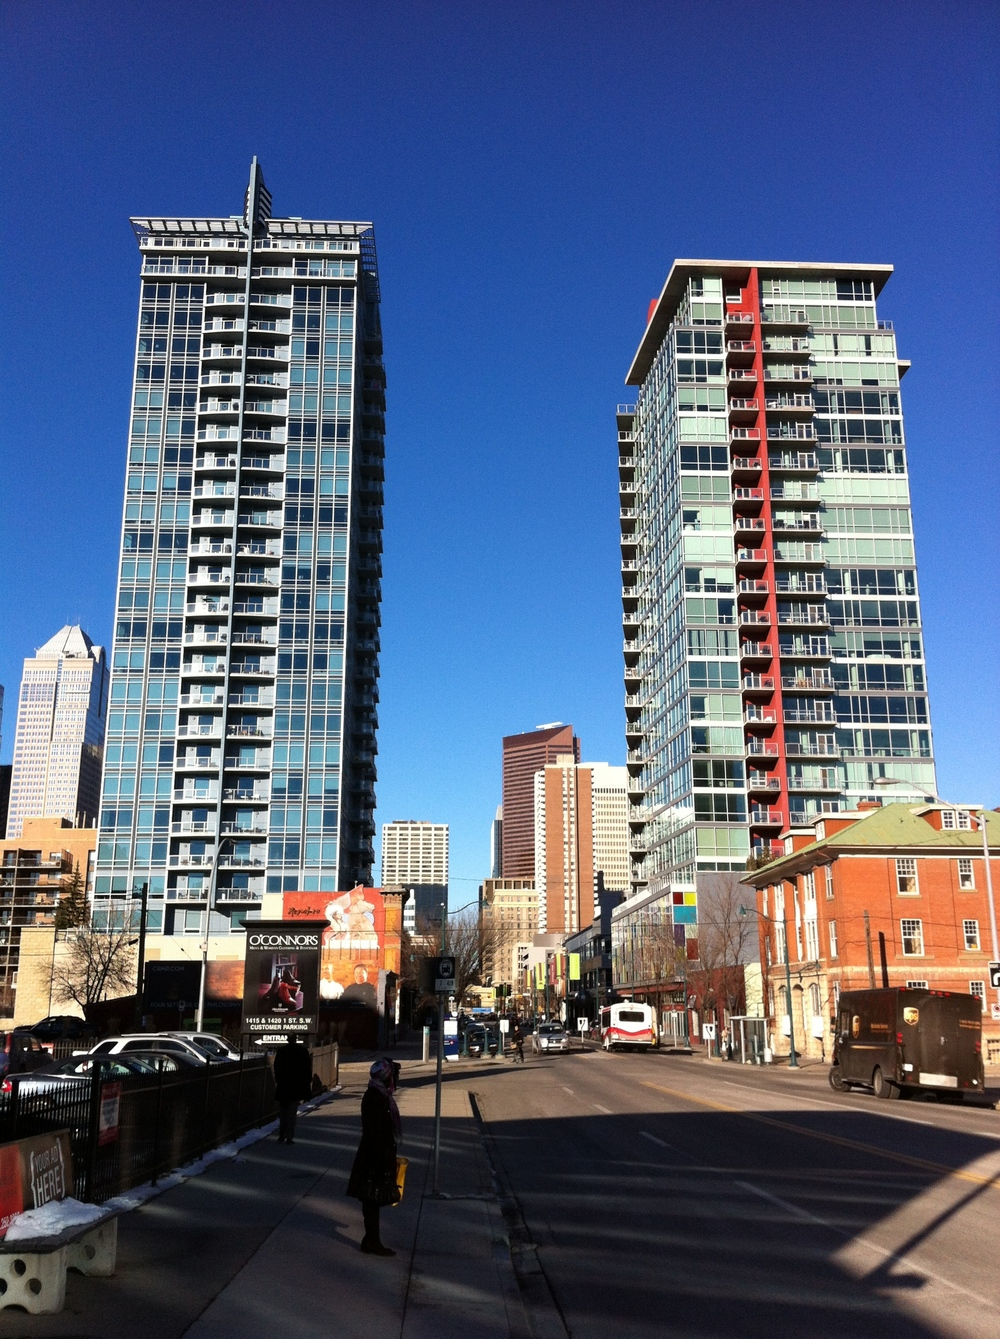 New +/- 20 storey condos are popping up on almost every block in the Beltline.